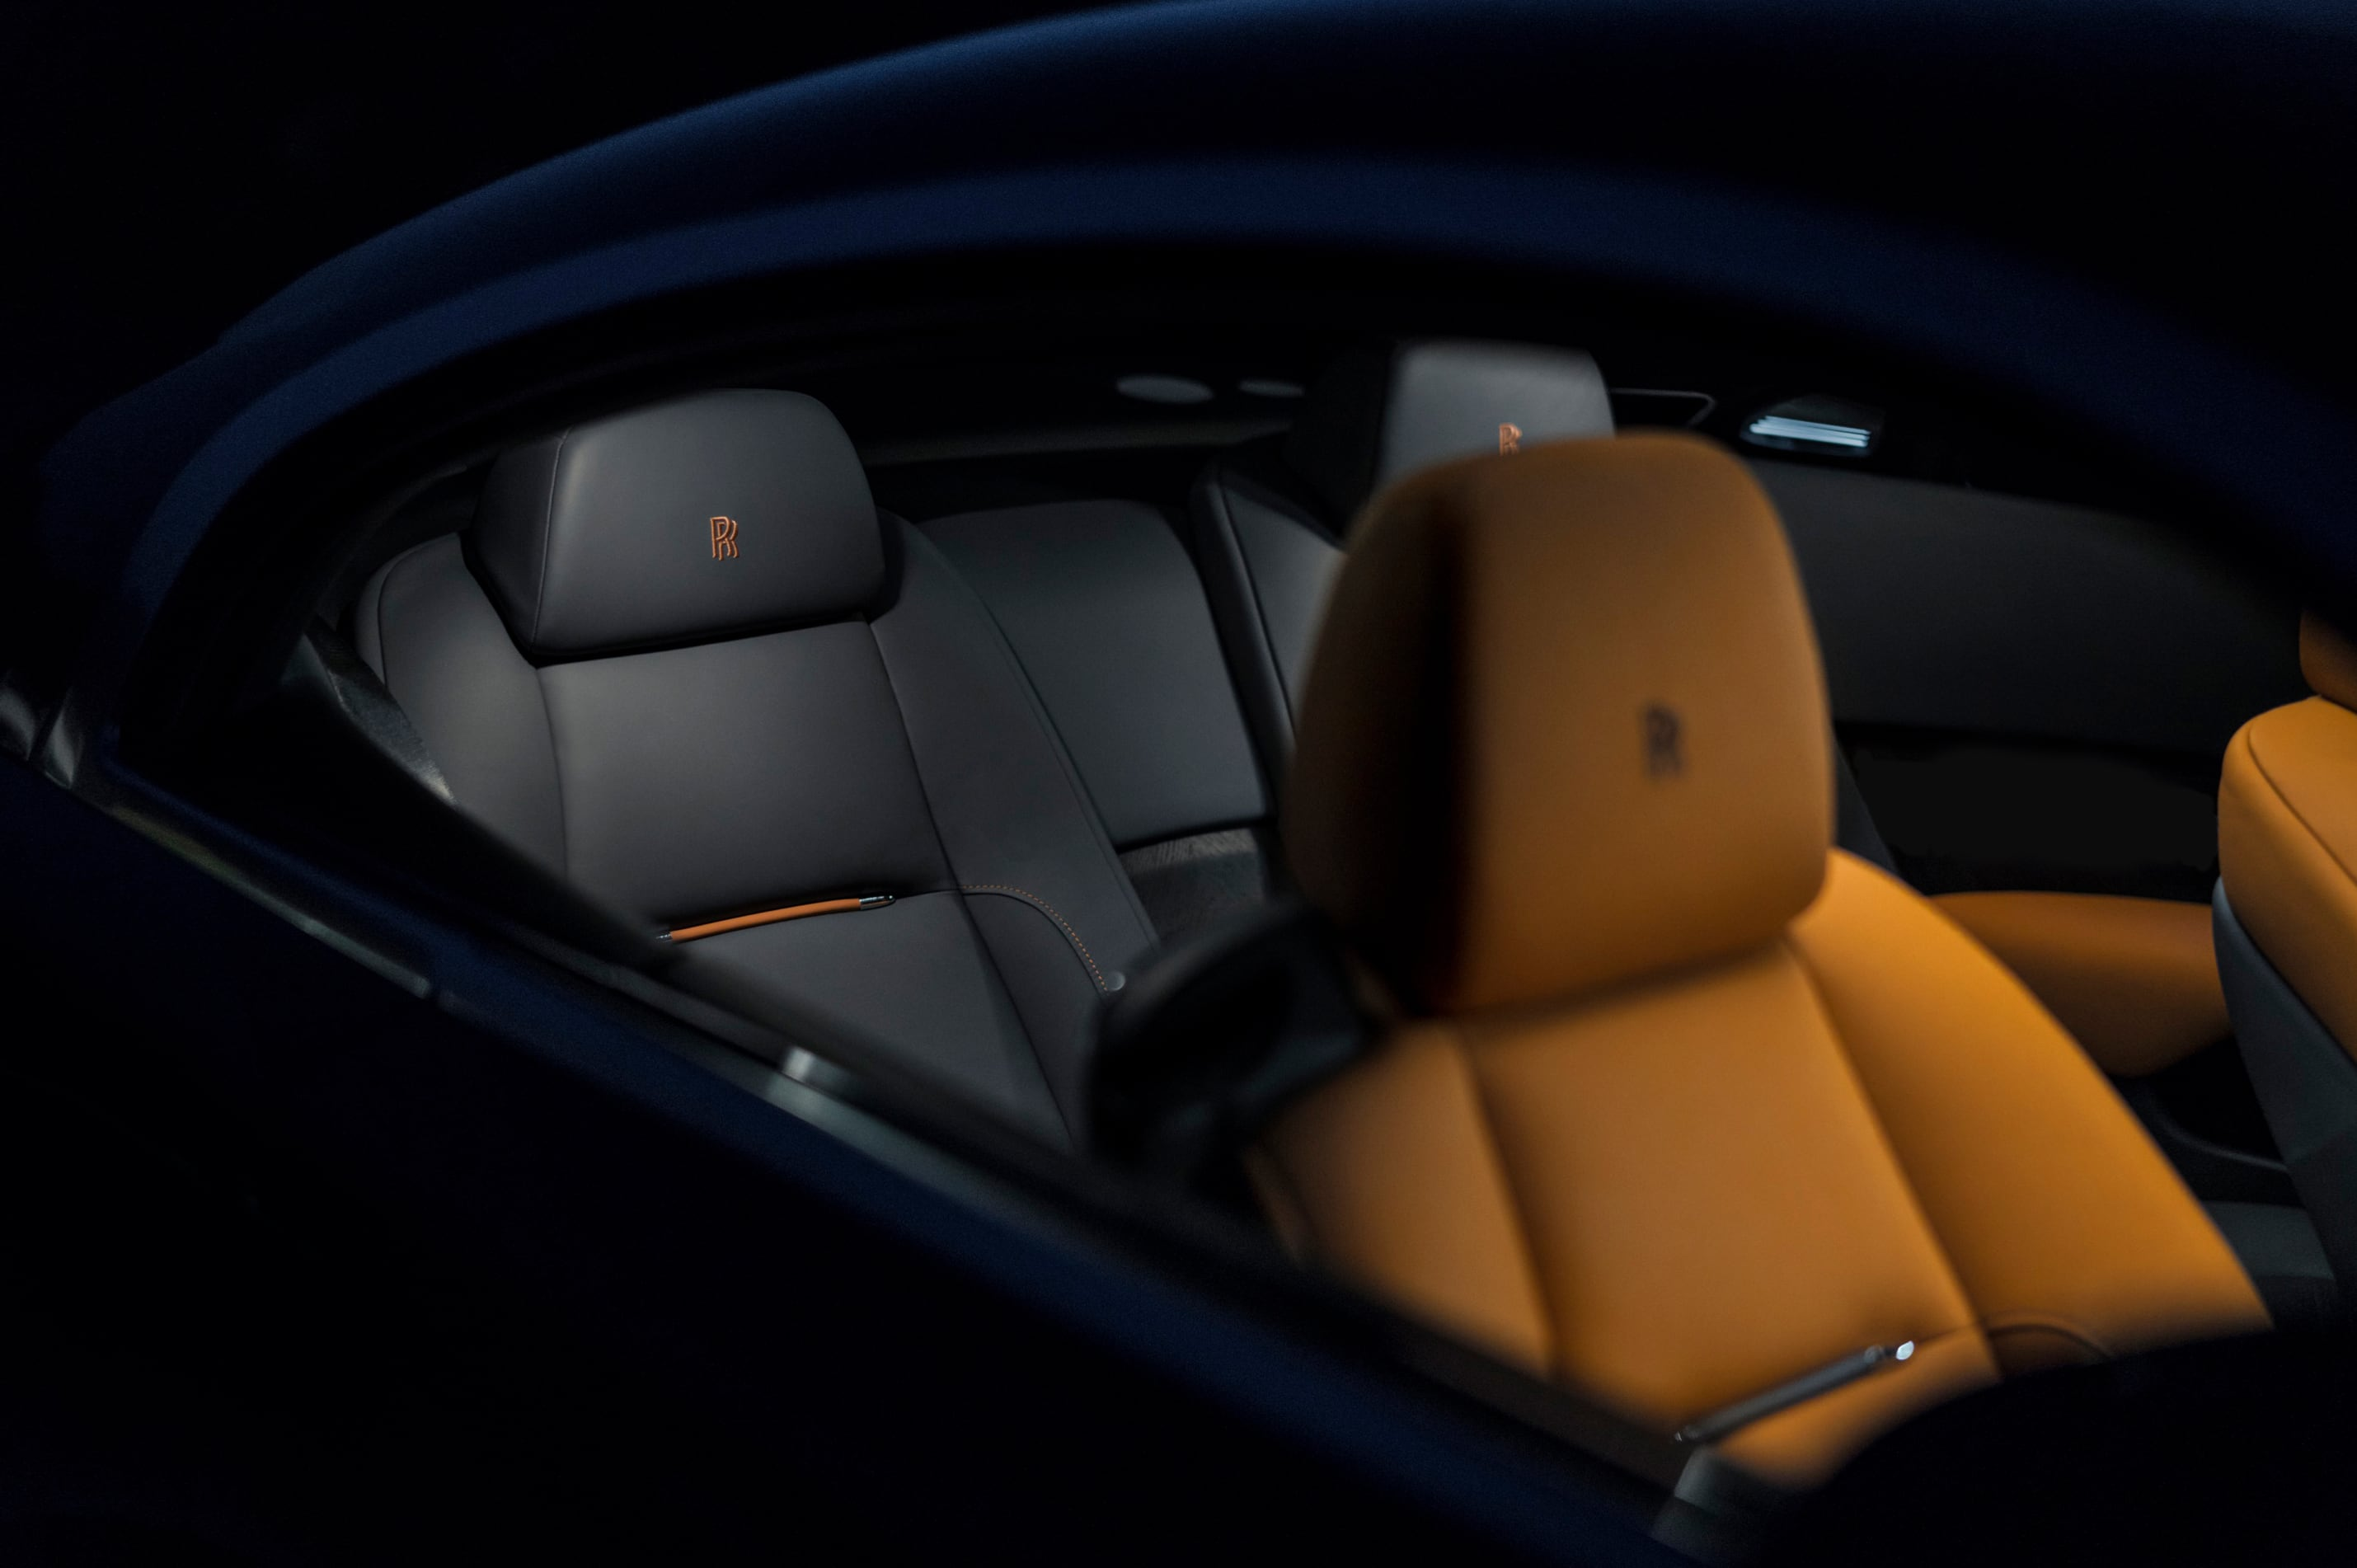 Rolls-Royce Wraith side view of front seat interior